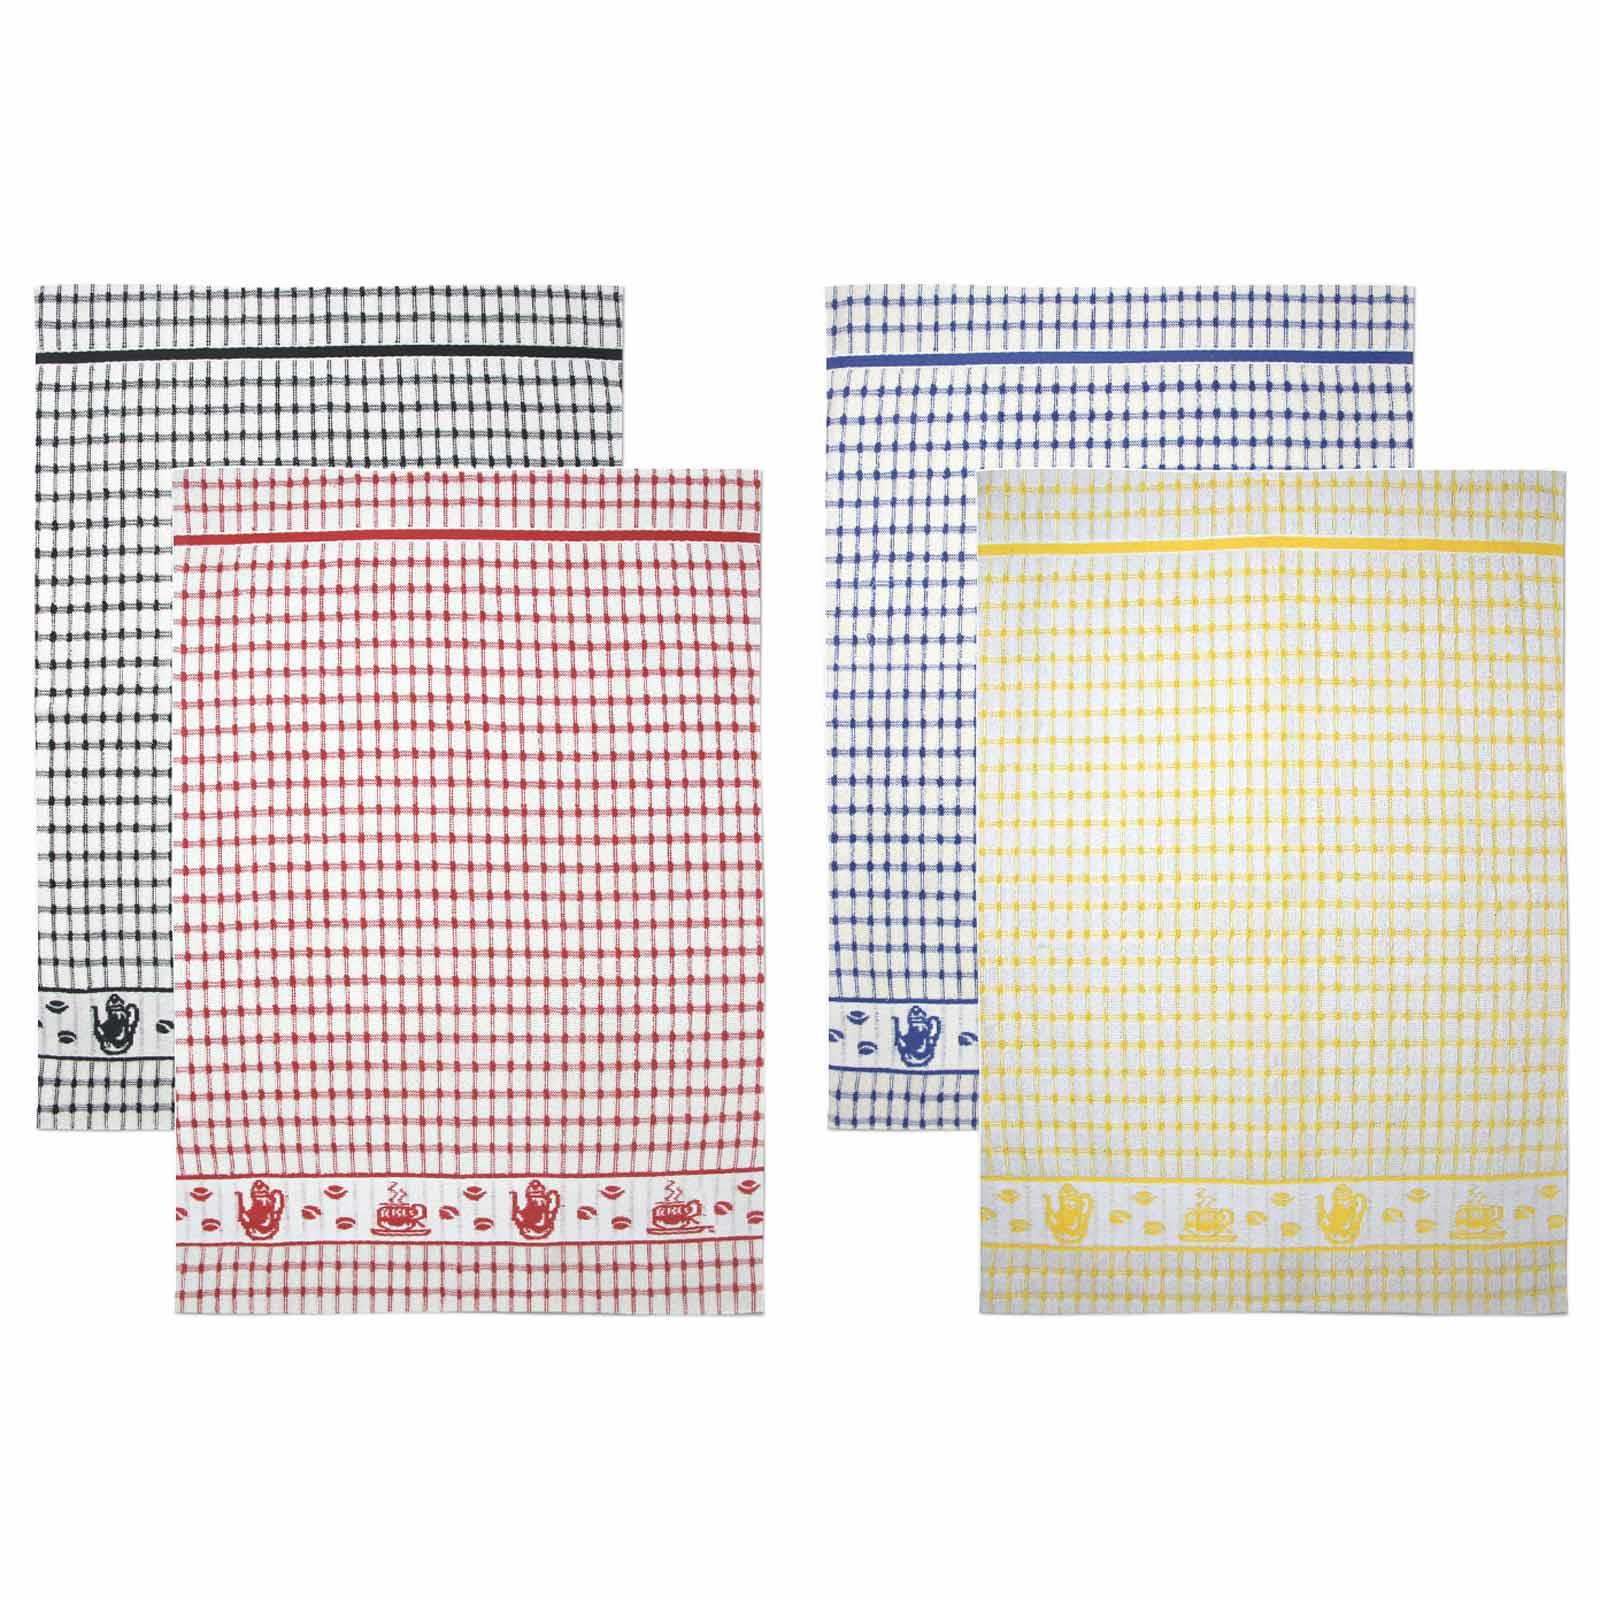 Packs-of-2-4-6-12-Tea-Towels-100-Cotton-Terry-Kitchen-Dish-Drying-Towel-Sets thumbnail 76